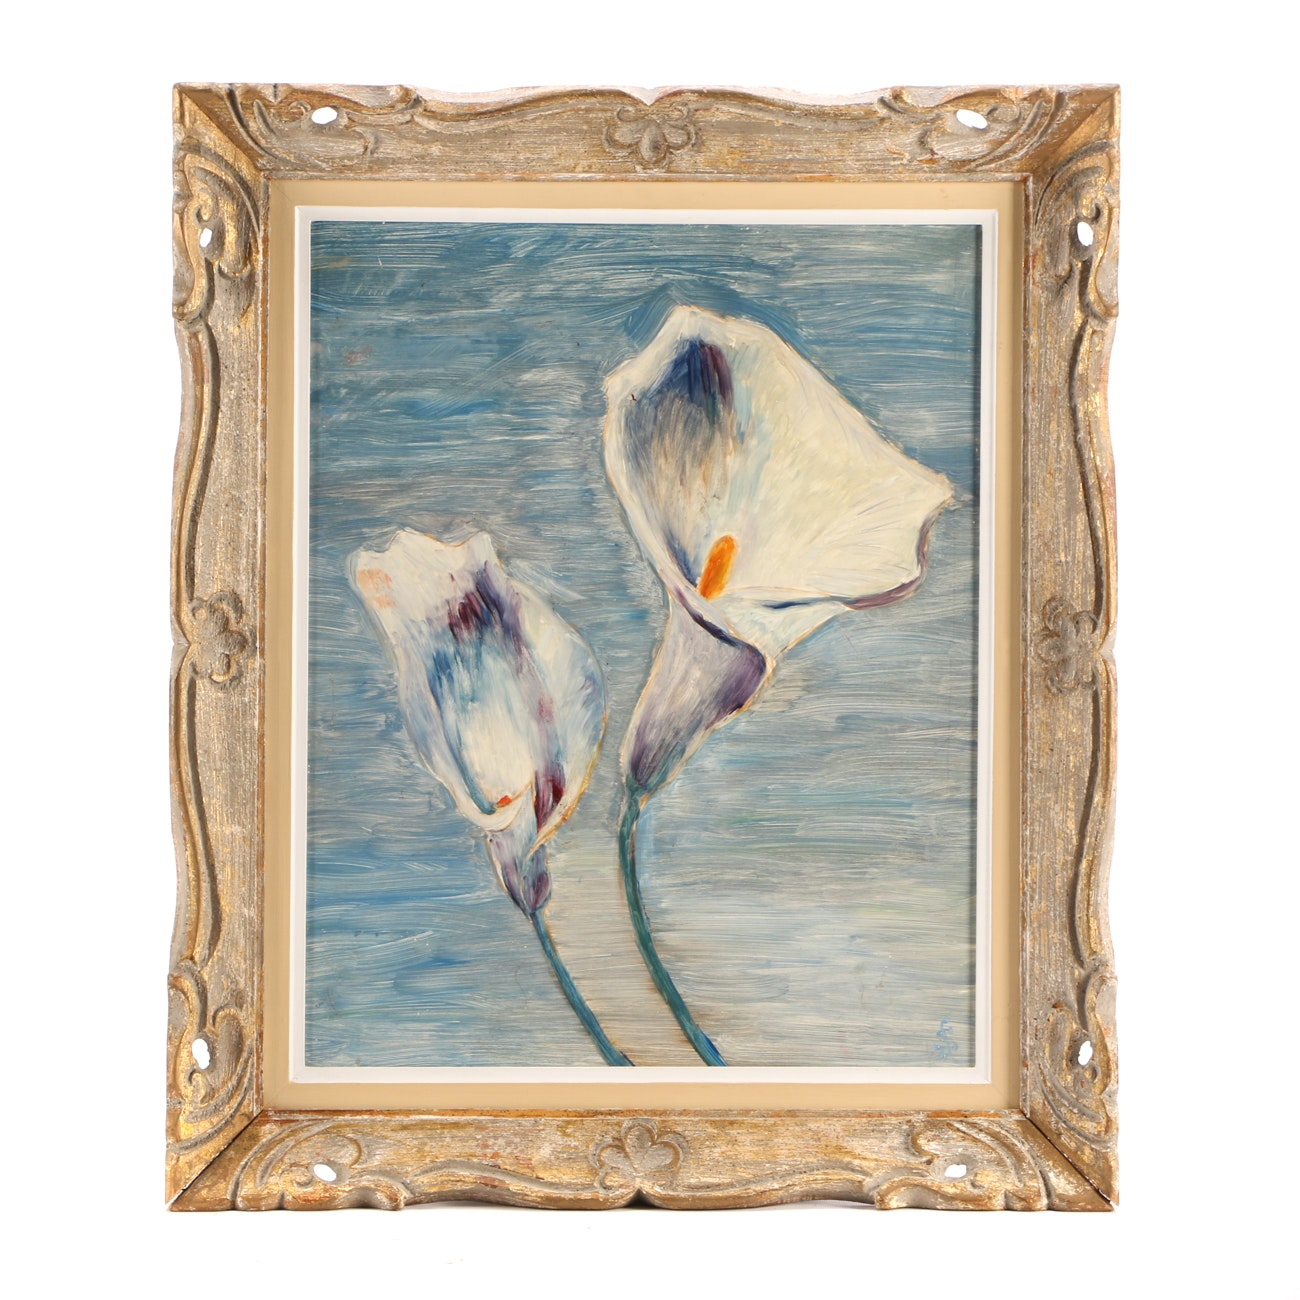 Sol Schwartz Oil Painting on Board of White Calla Lilies